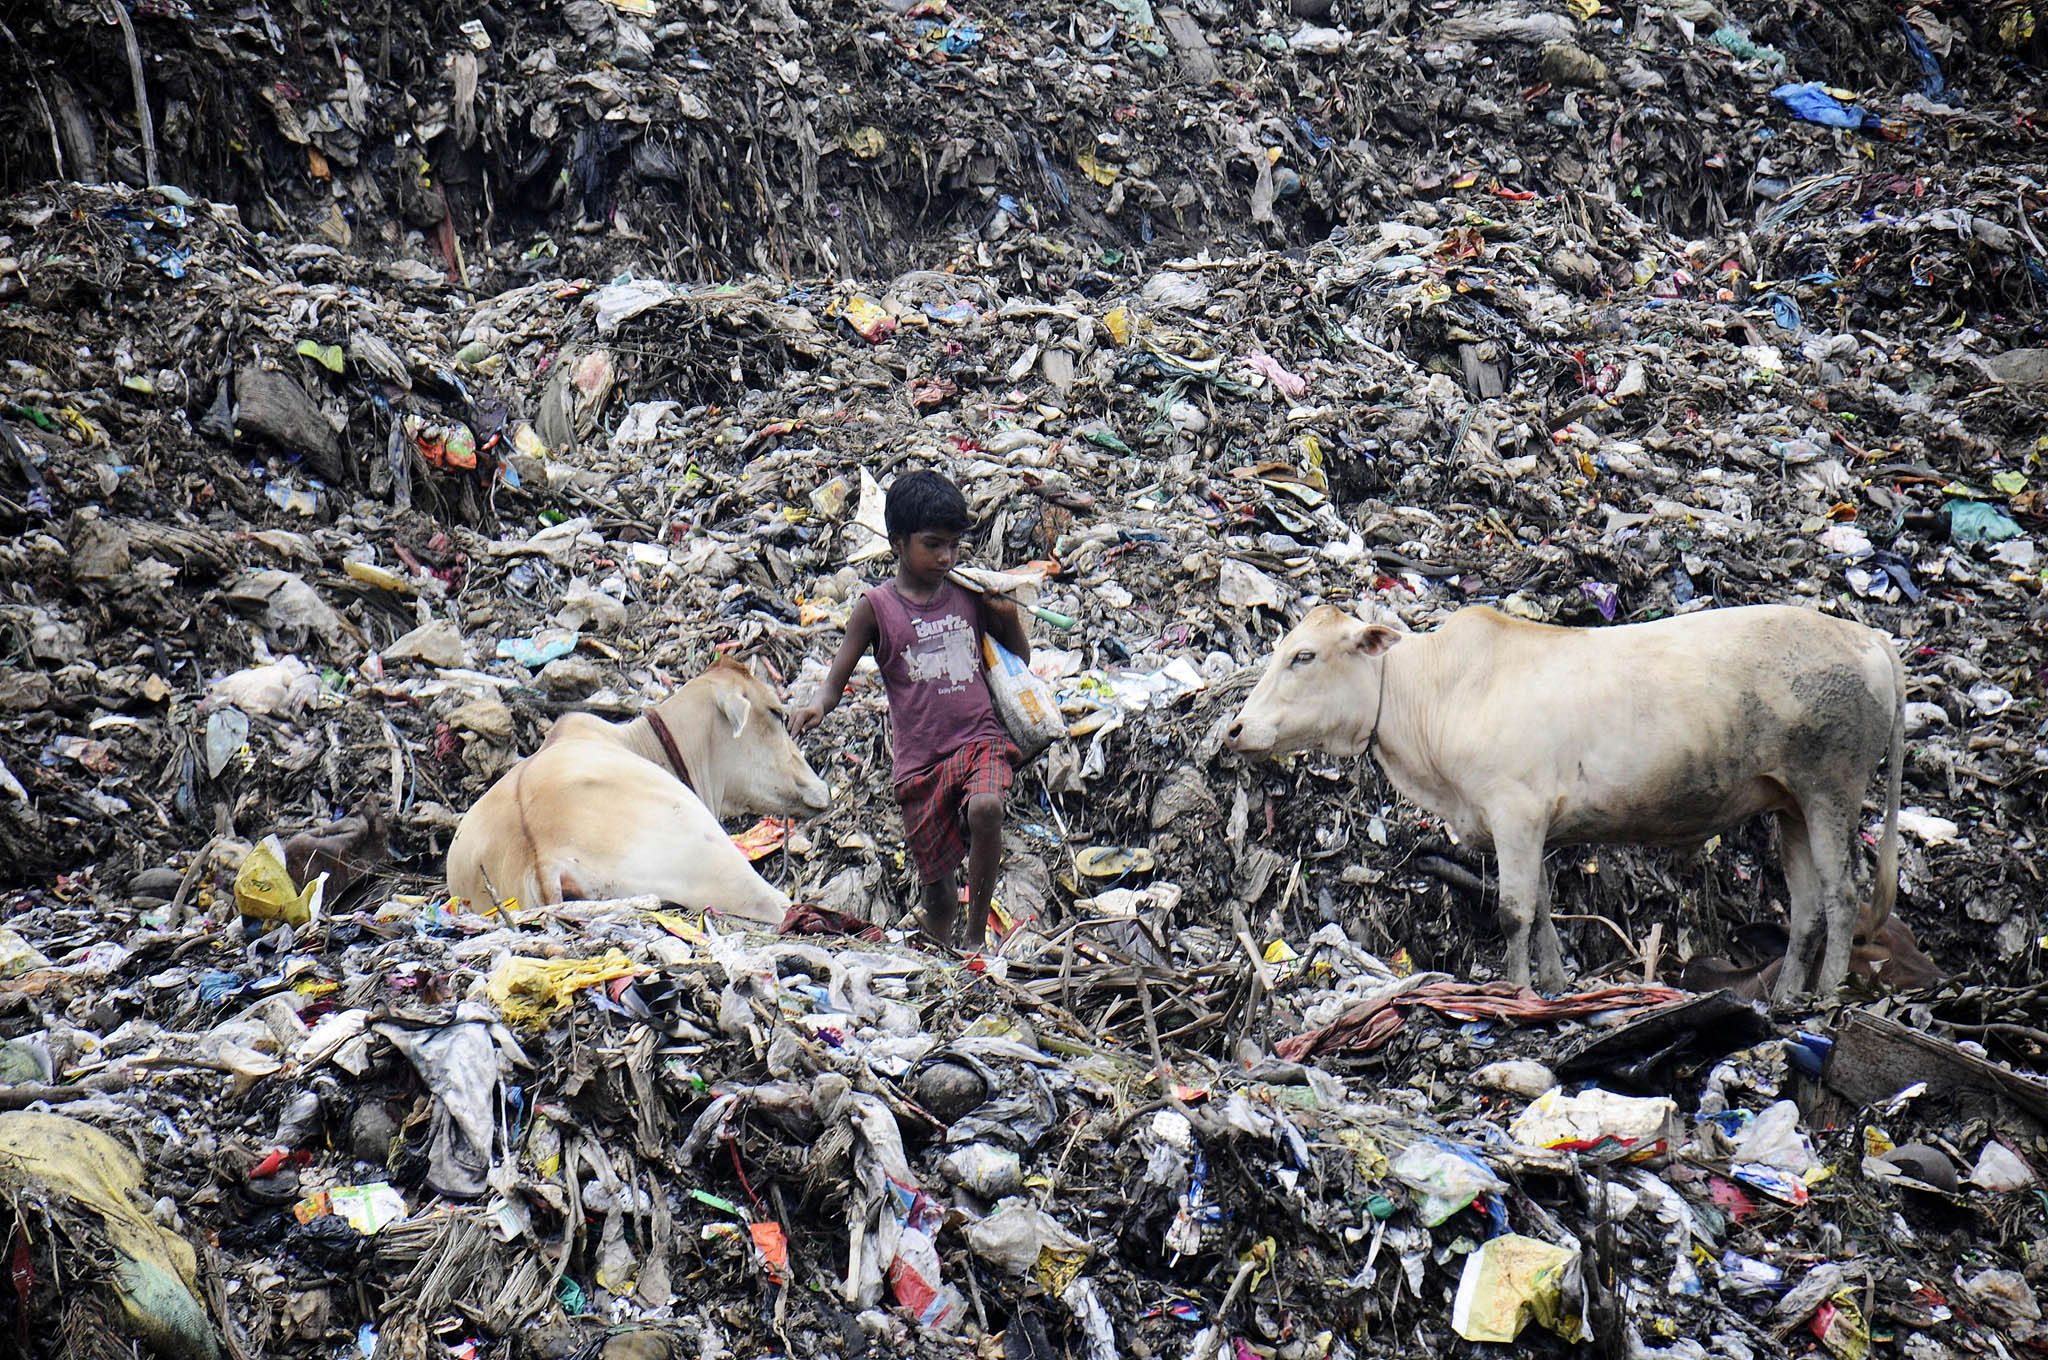 An Indian rag-picker looks for recyclable material in what is reportedly the largest rubbish tip in the state of Assam on the eve of World Environment Day in the Boragoan area of Guwahati on June 4, 2015.  World Environment Day is marked anually on June 5.